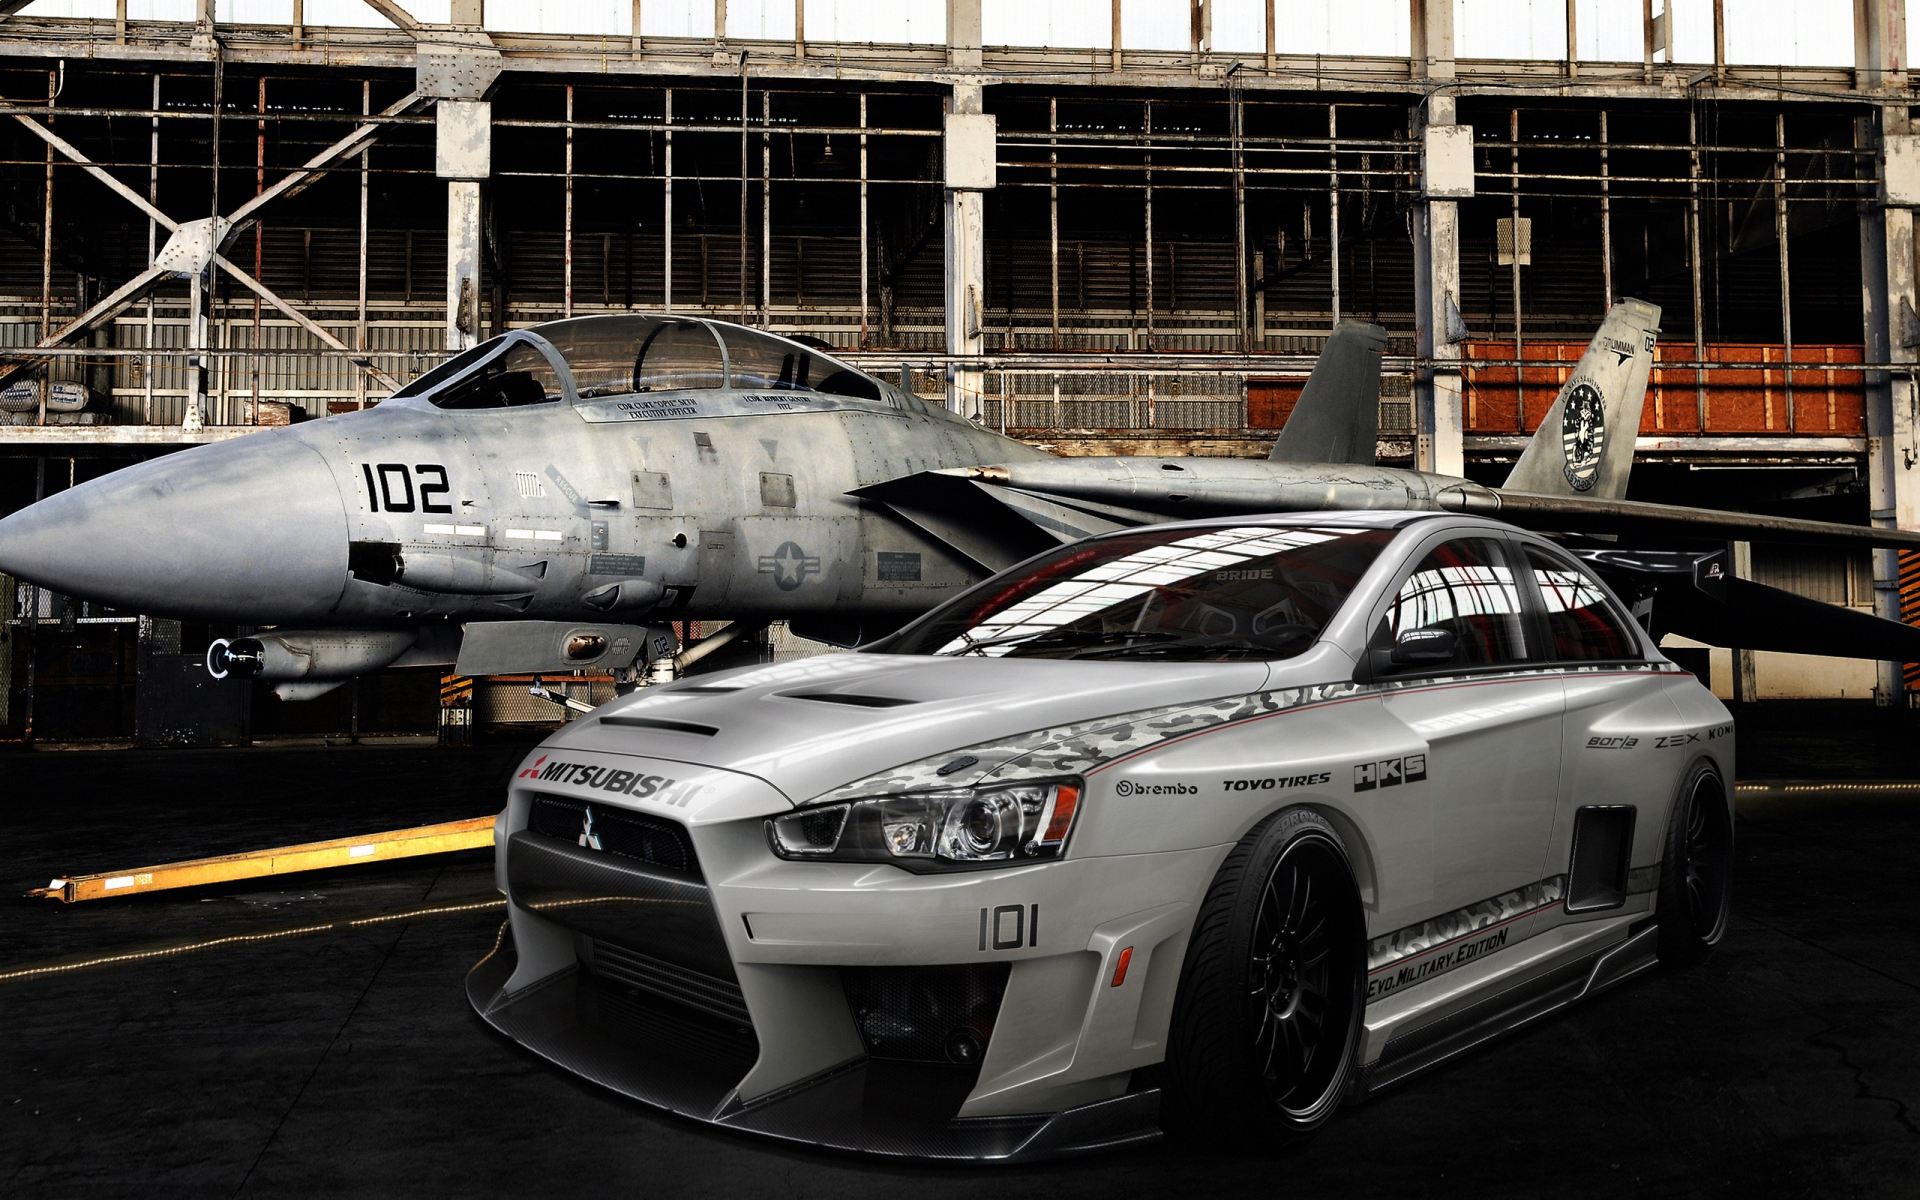 Mitsubishi Lancer Evolution Military for 1920 x 1200 widescreen resolution